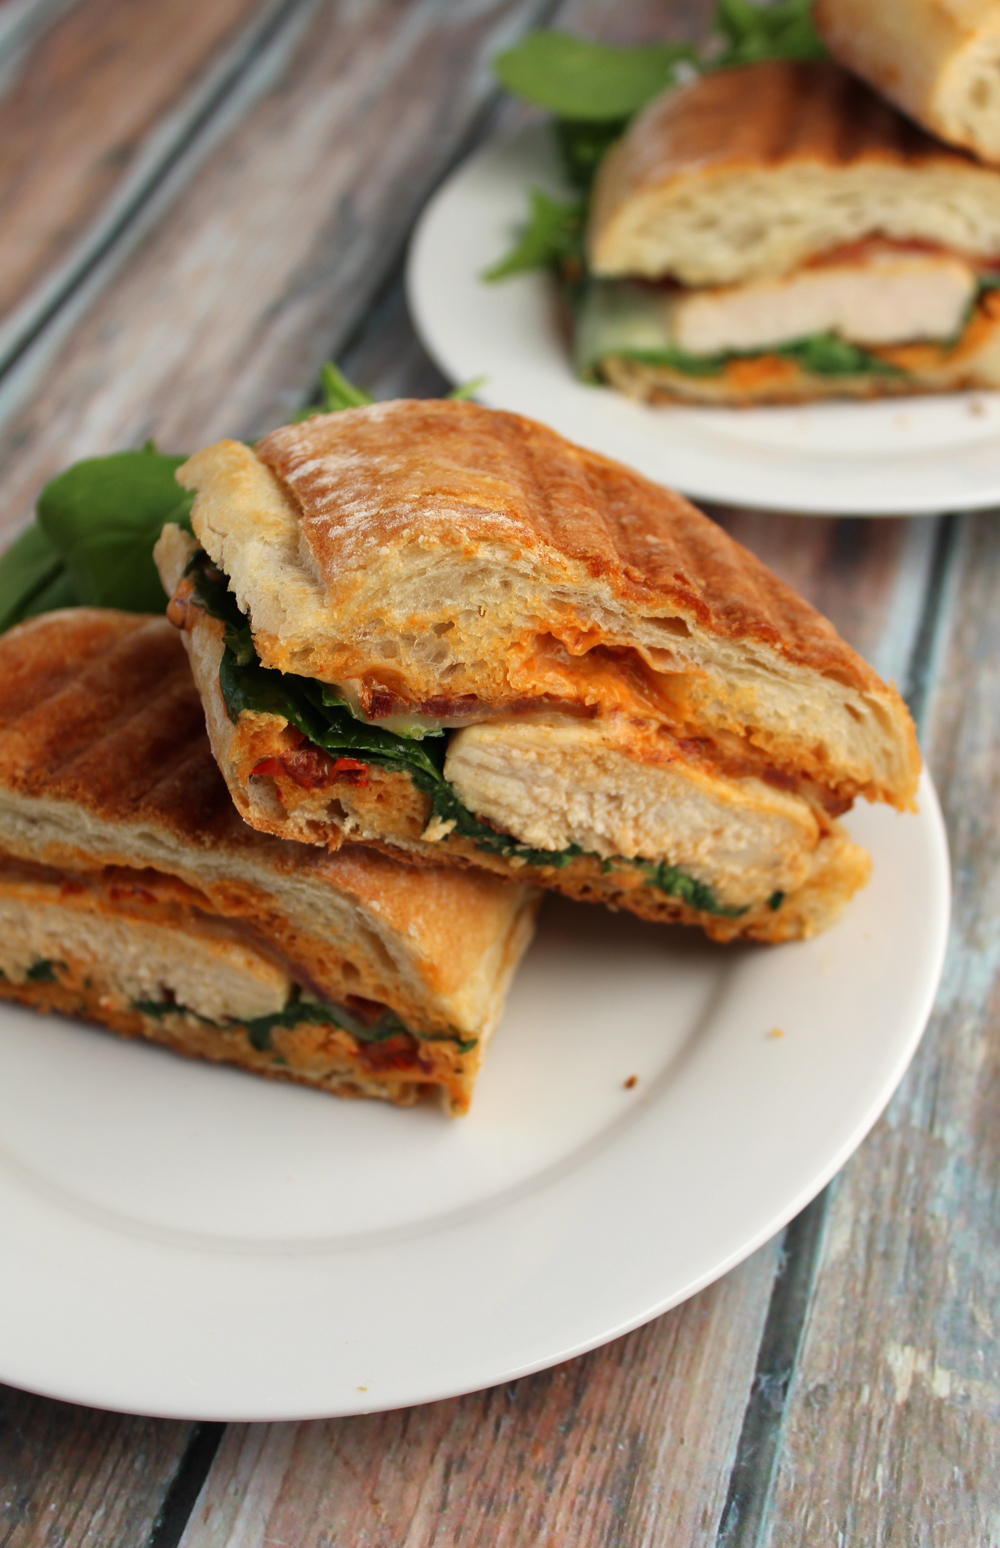 Chipotle Chicken Bacon Panini - The Newlyweds Cookbook